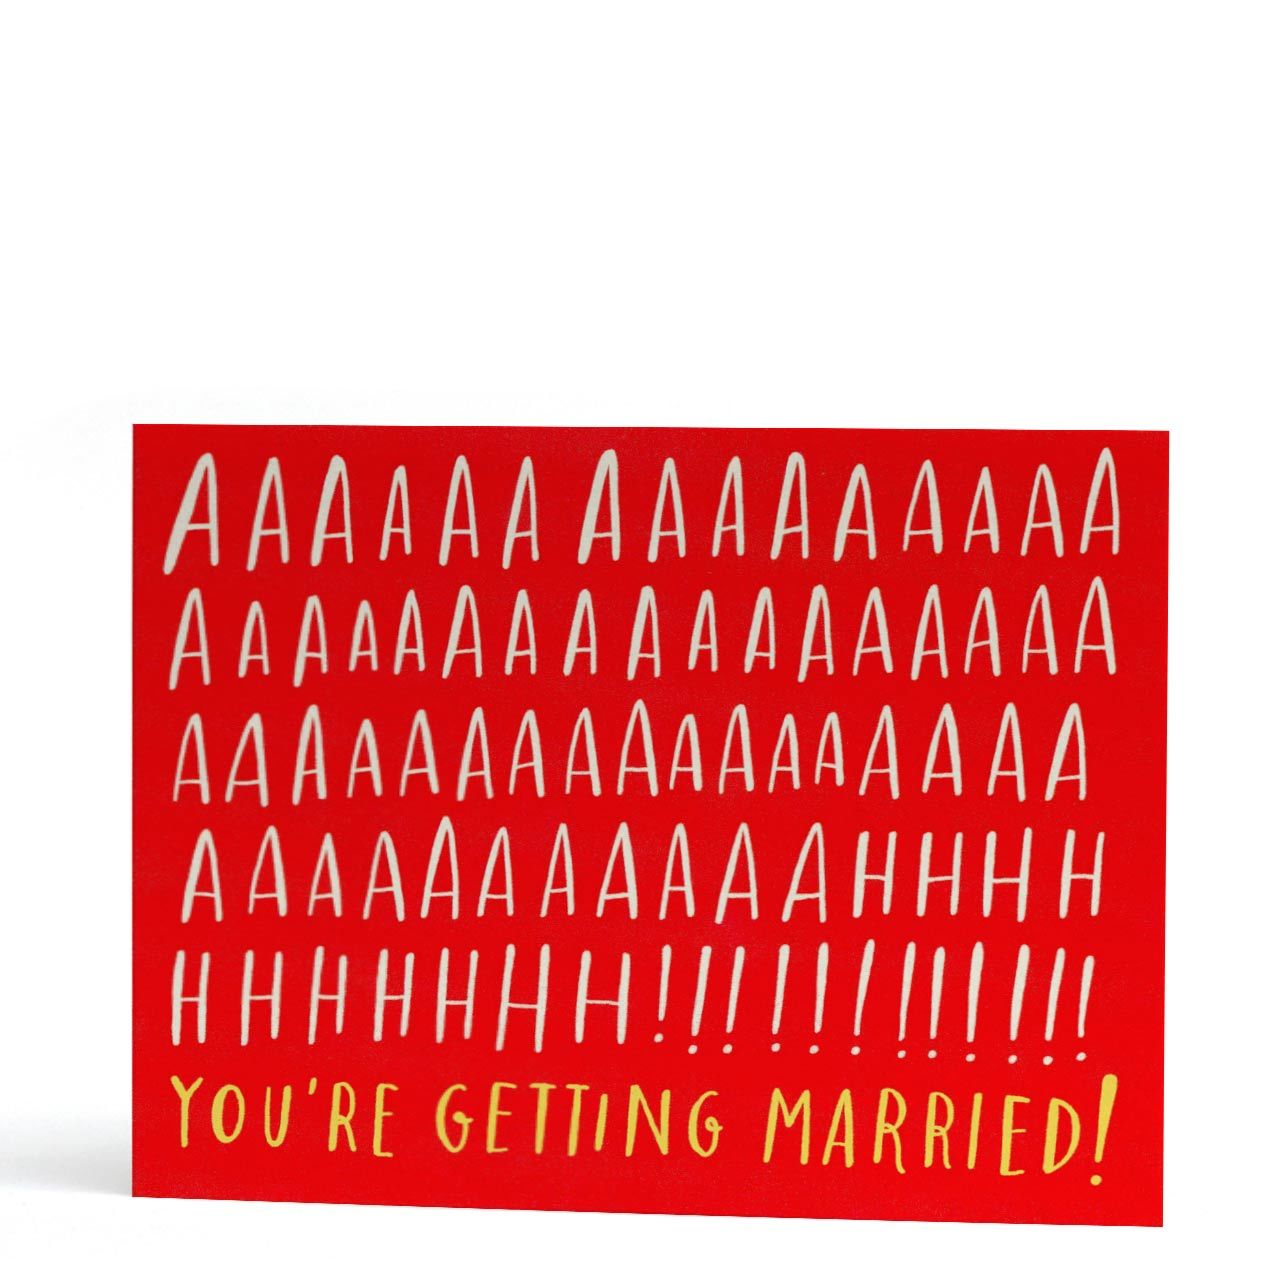 Aaaaaahhh! You're Getting Married! Greeting Card